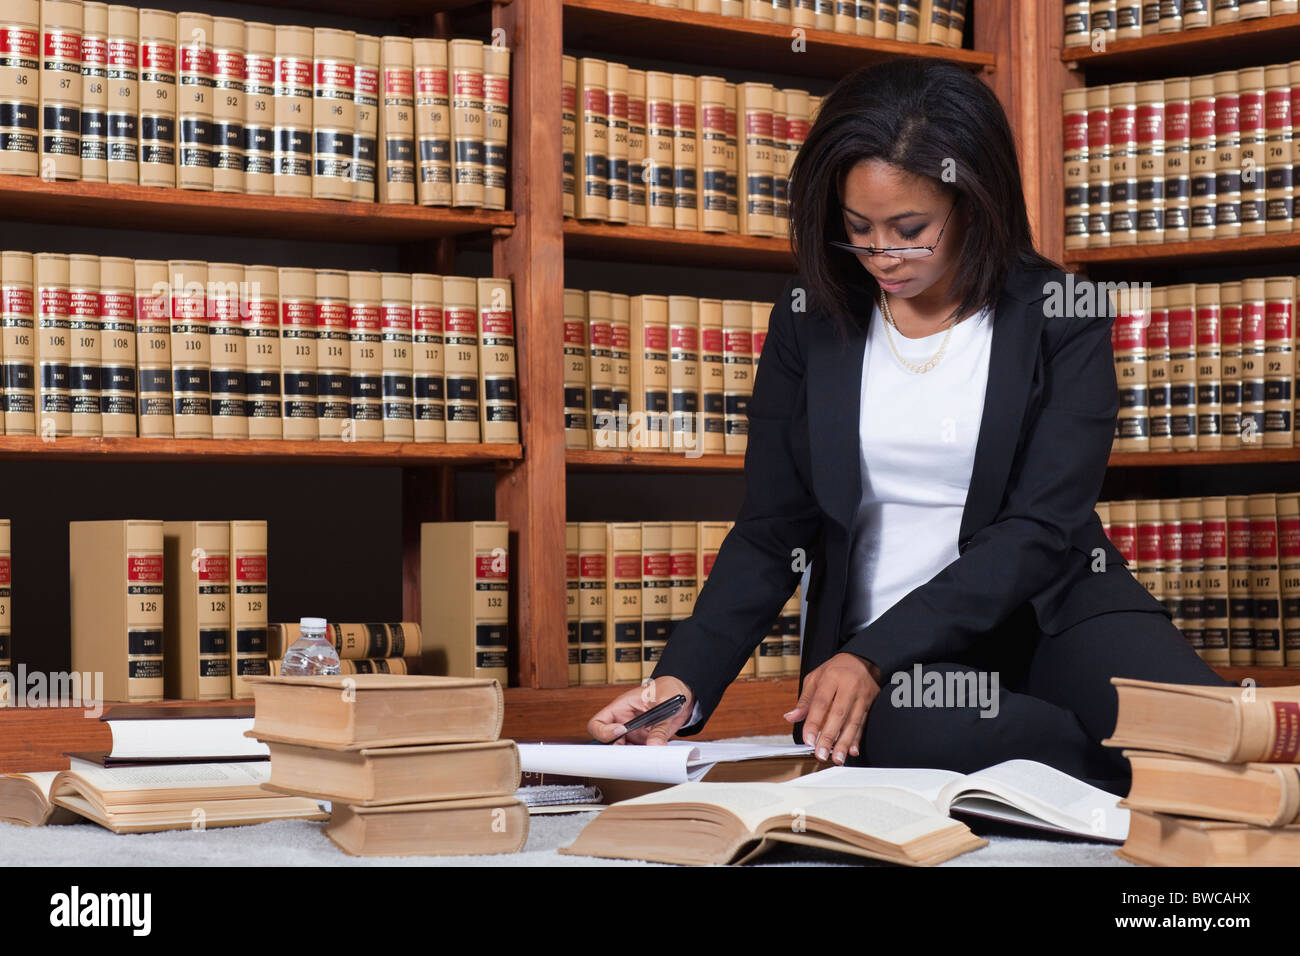 USA, California, Oakland, Woman reading books in library - Stock Image